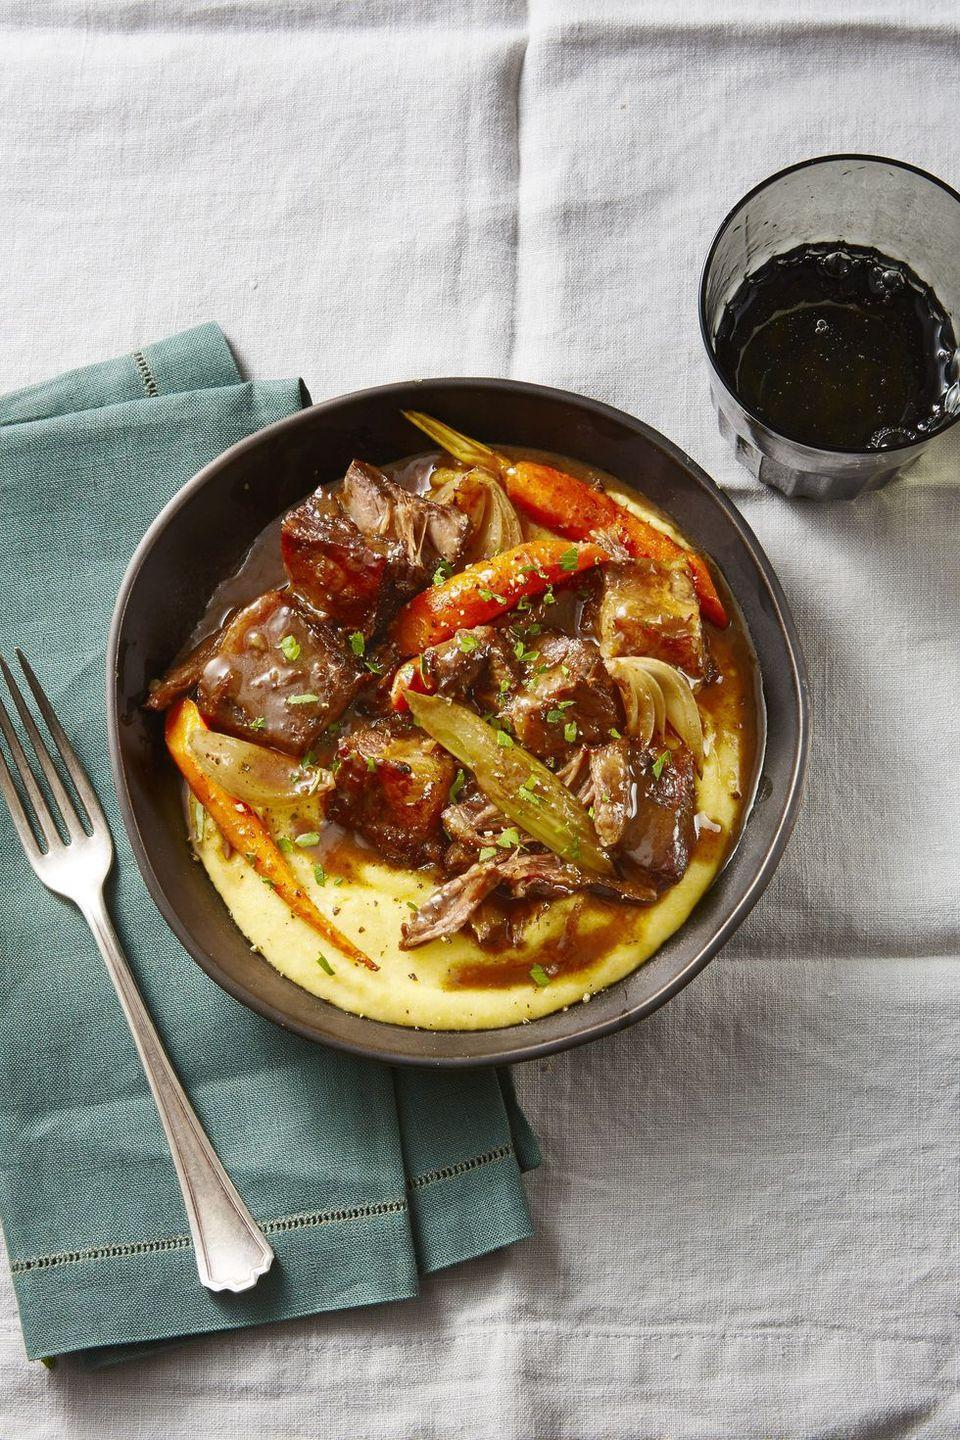 """<p>Slow-roasting short ribs is a set-it-and-forget it kind of meal; you'll have 4 hours of patiently waiting to be rewarded with a flavorful meal you'll be thinking about into next year. </p><p><em><a href=""""https://www.goodhousekeeping.com/food-recipes/a47958/red-wine-braised-short-ribs-recipe/"""" rel=""""nofollow noopener"""" target=""""_blank"""" data-ylk=""""slk:Get the recipe for Red-Wine-Braised Short Ribs »"""" class=""""link rapid-noclick-resp"""">Get the recipe for Red-Wine-Braised Short Ribs »</a></em></p>"""